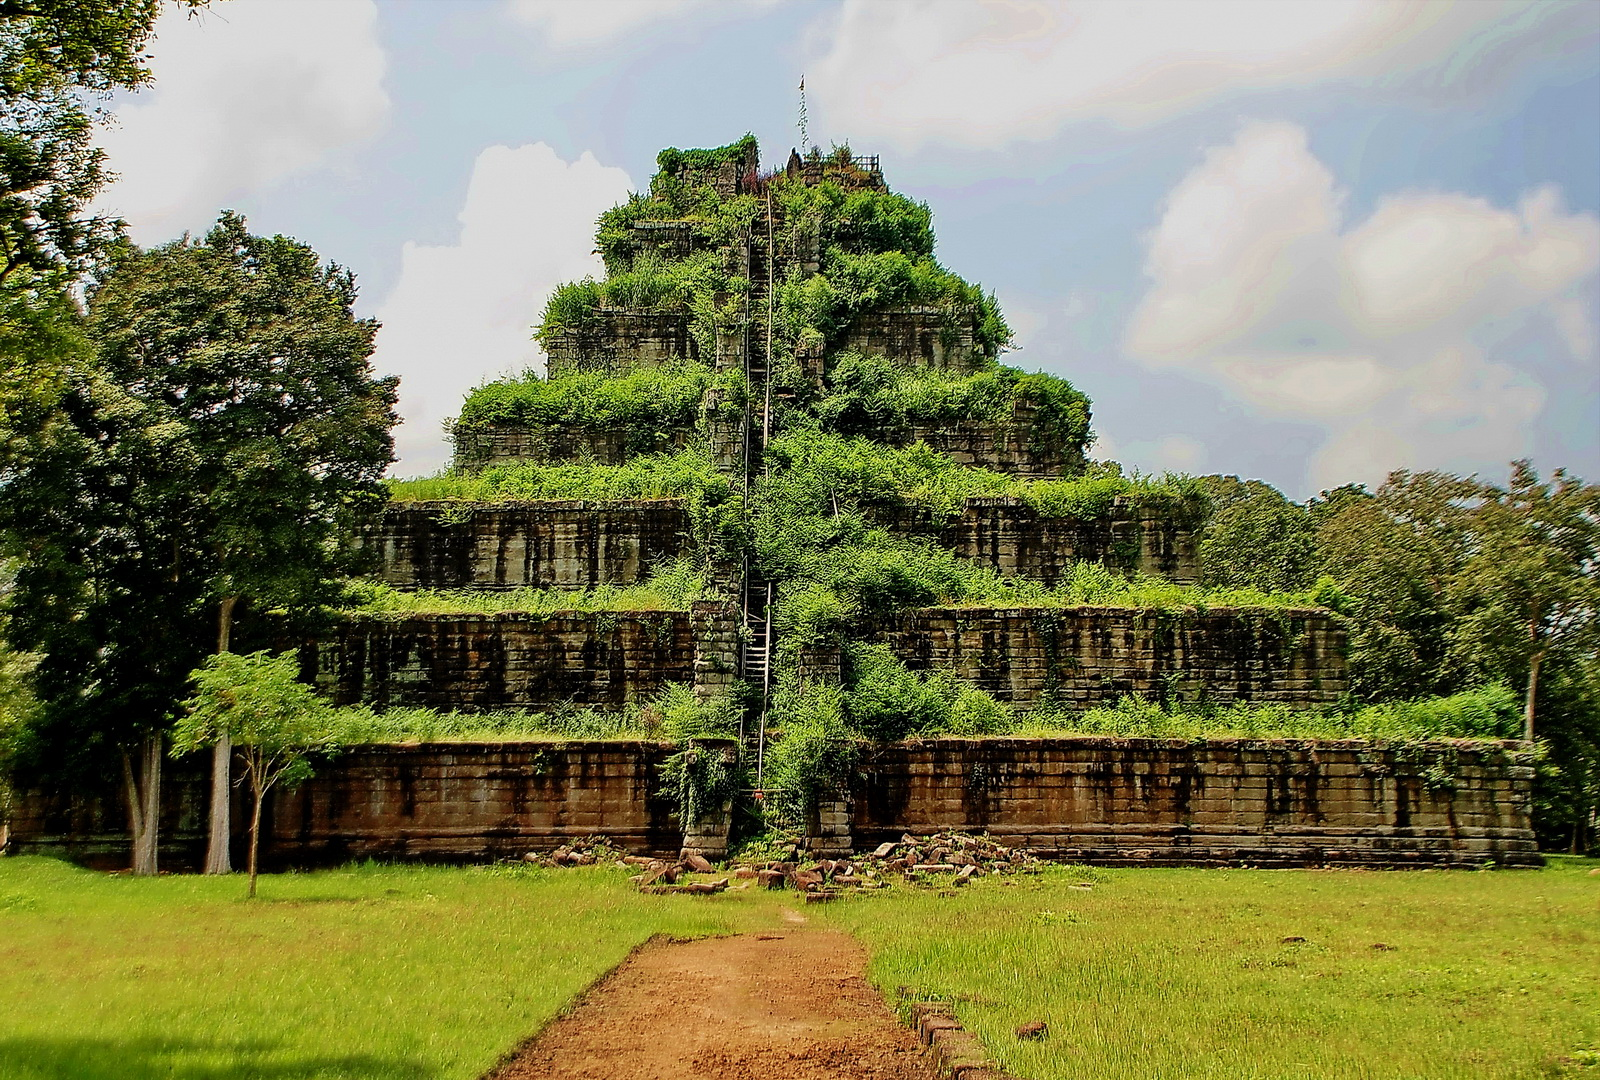 The unique 7-tiered pyramid of Prasart Thom